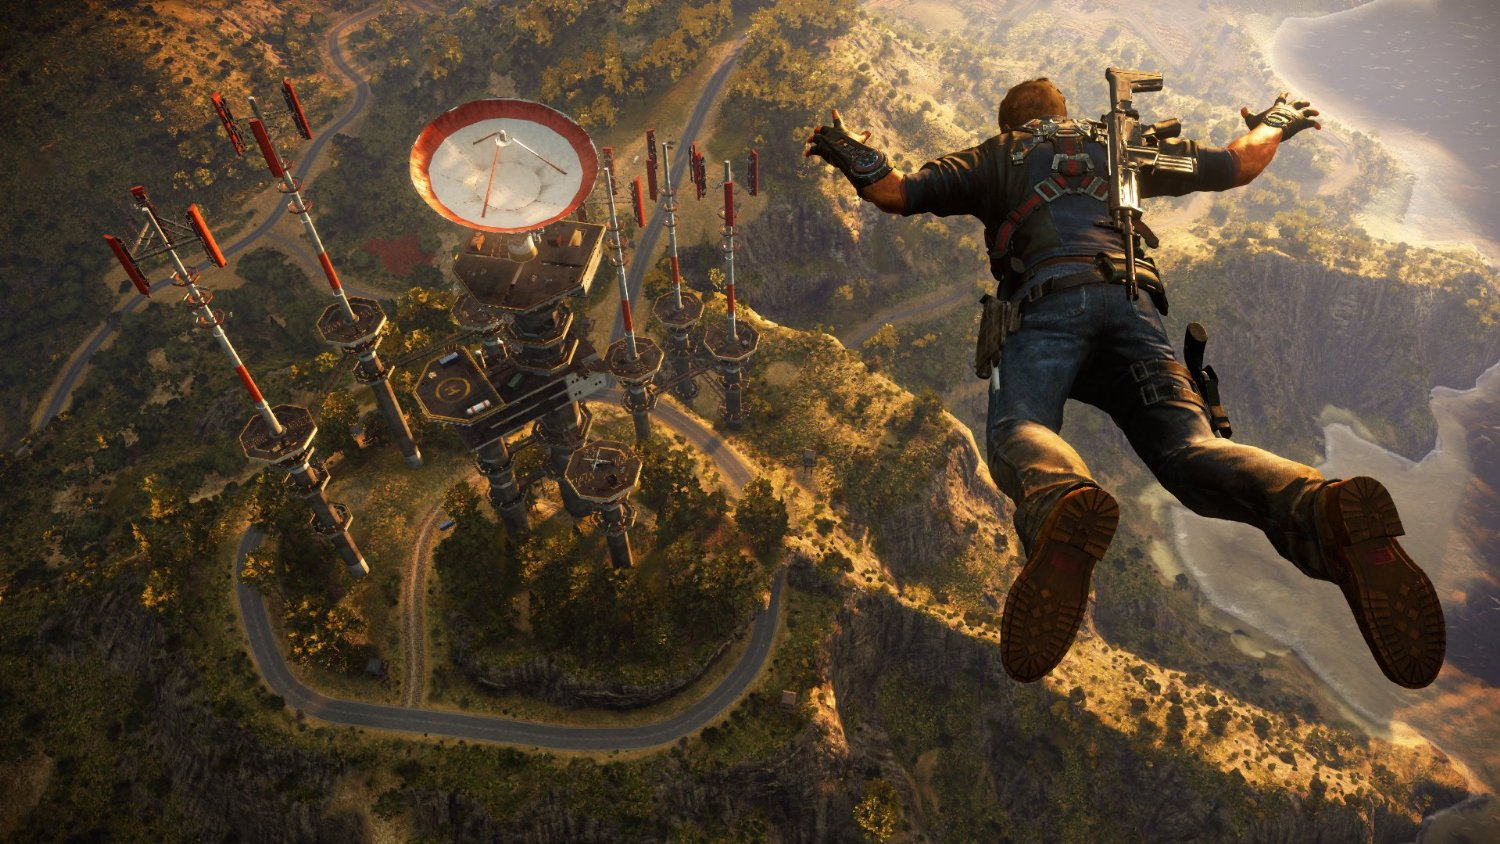 Official Just Cause 3 D1 Edition + Map of Medici (PC)